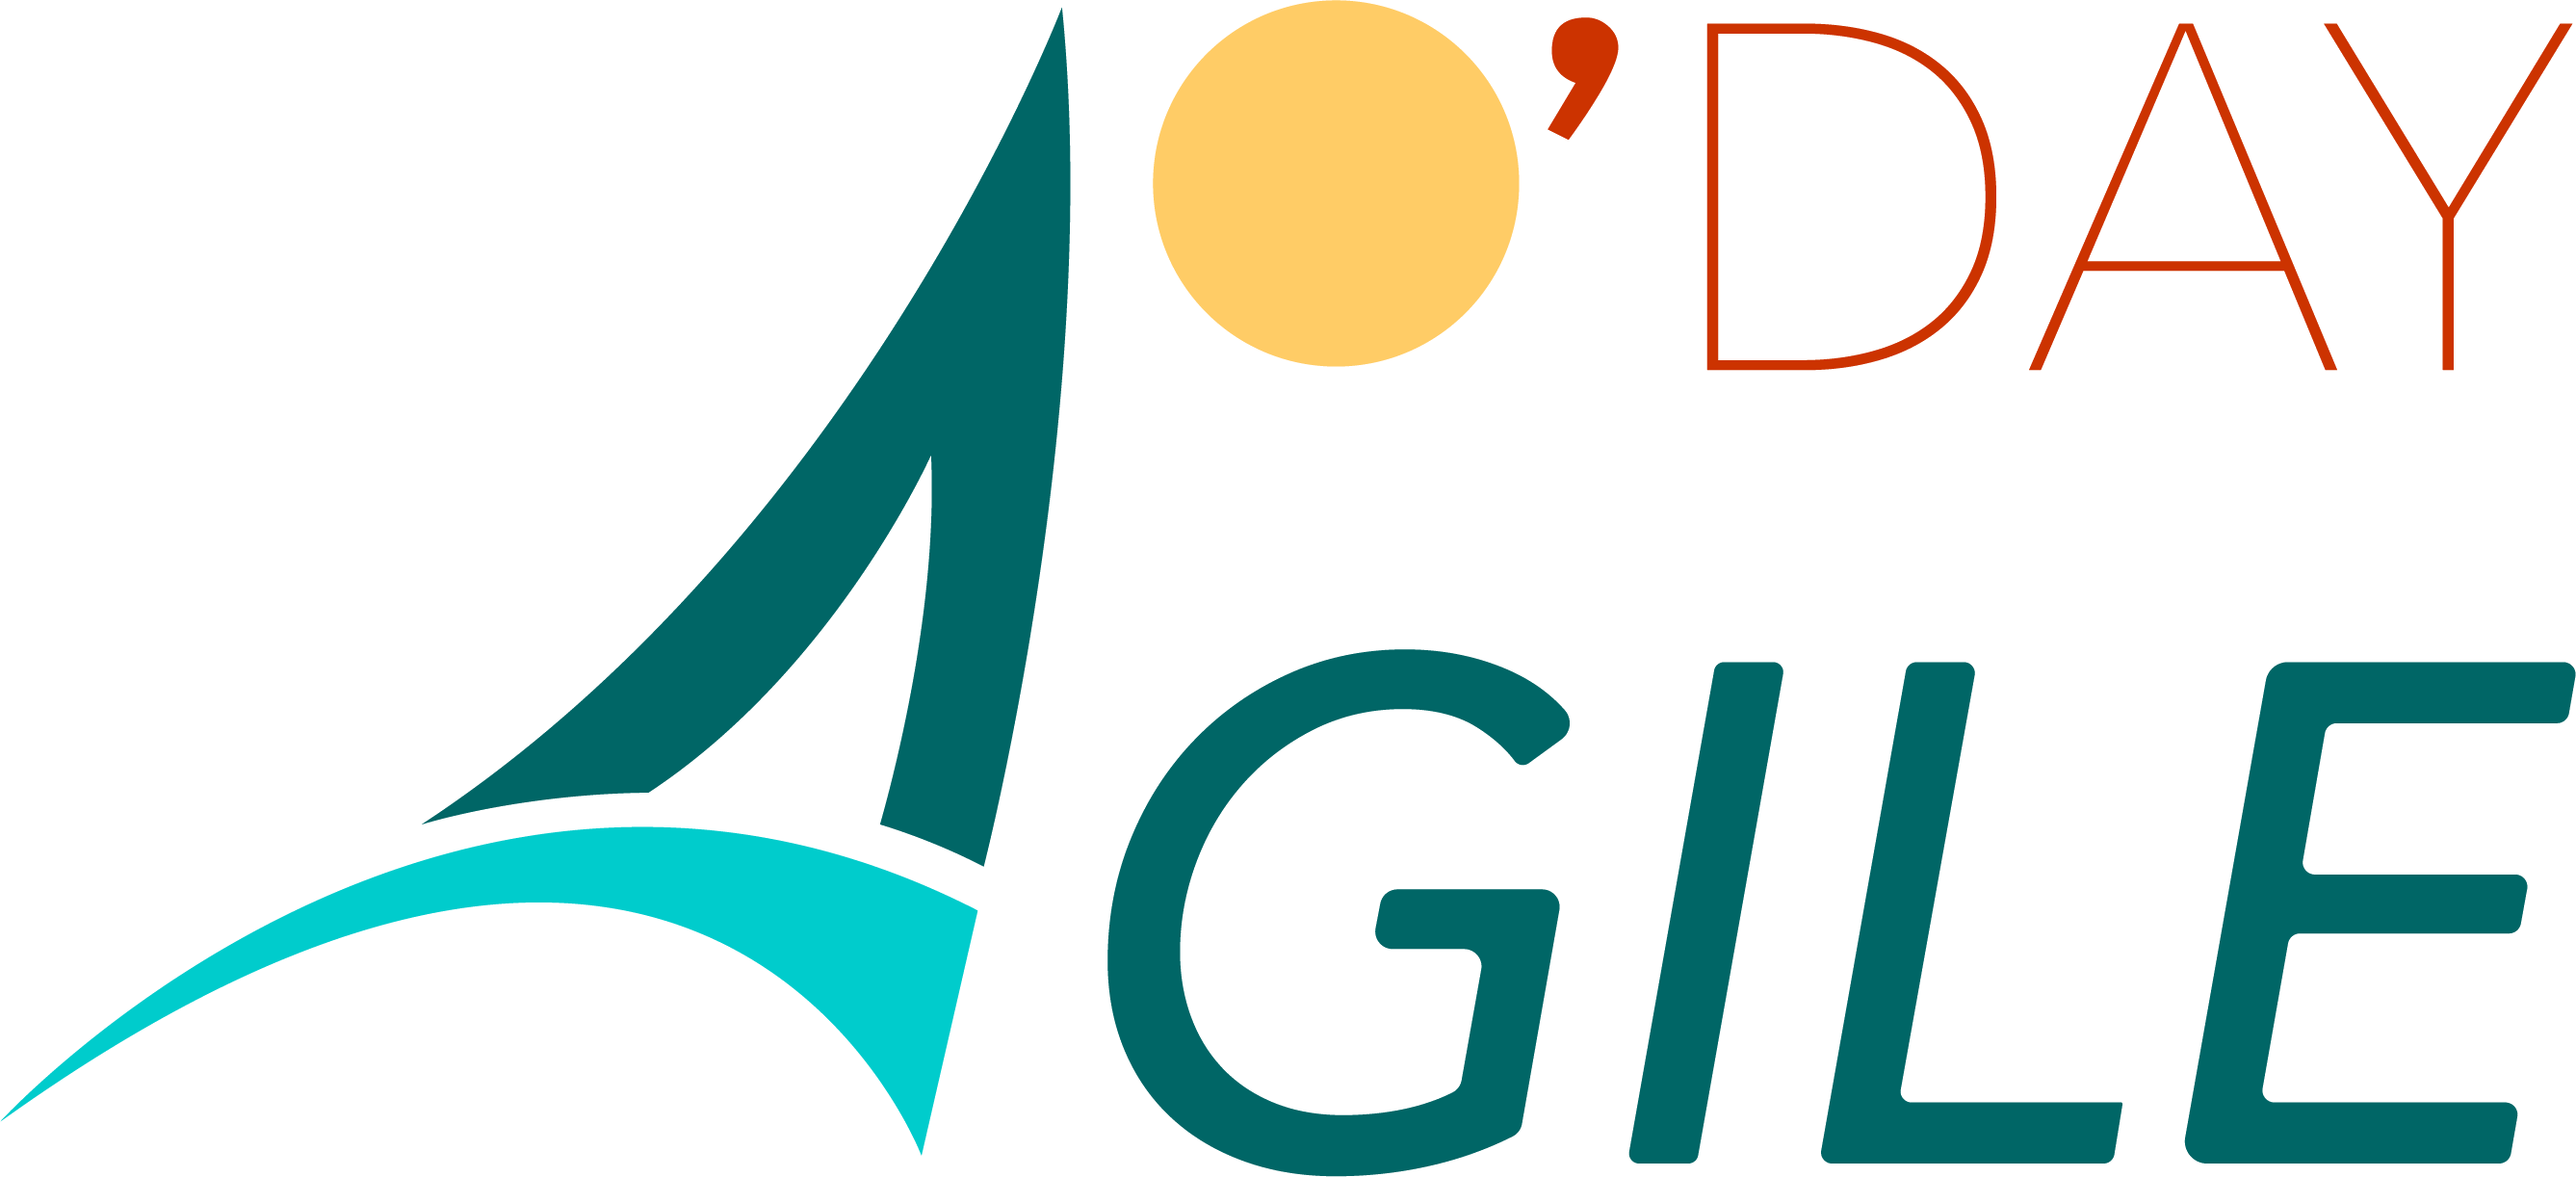 agile o day logo